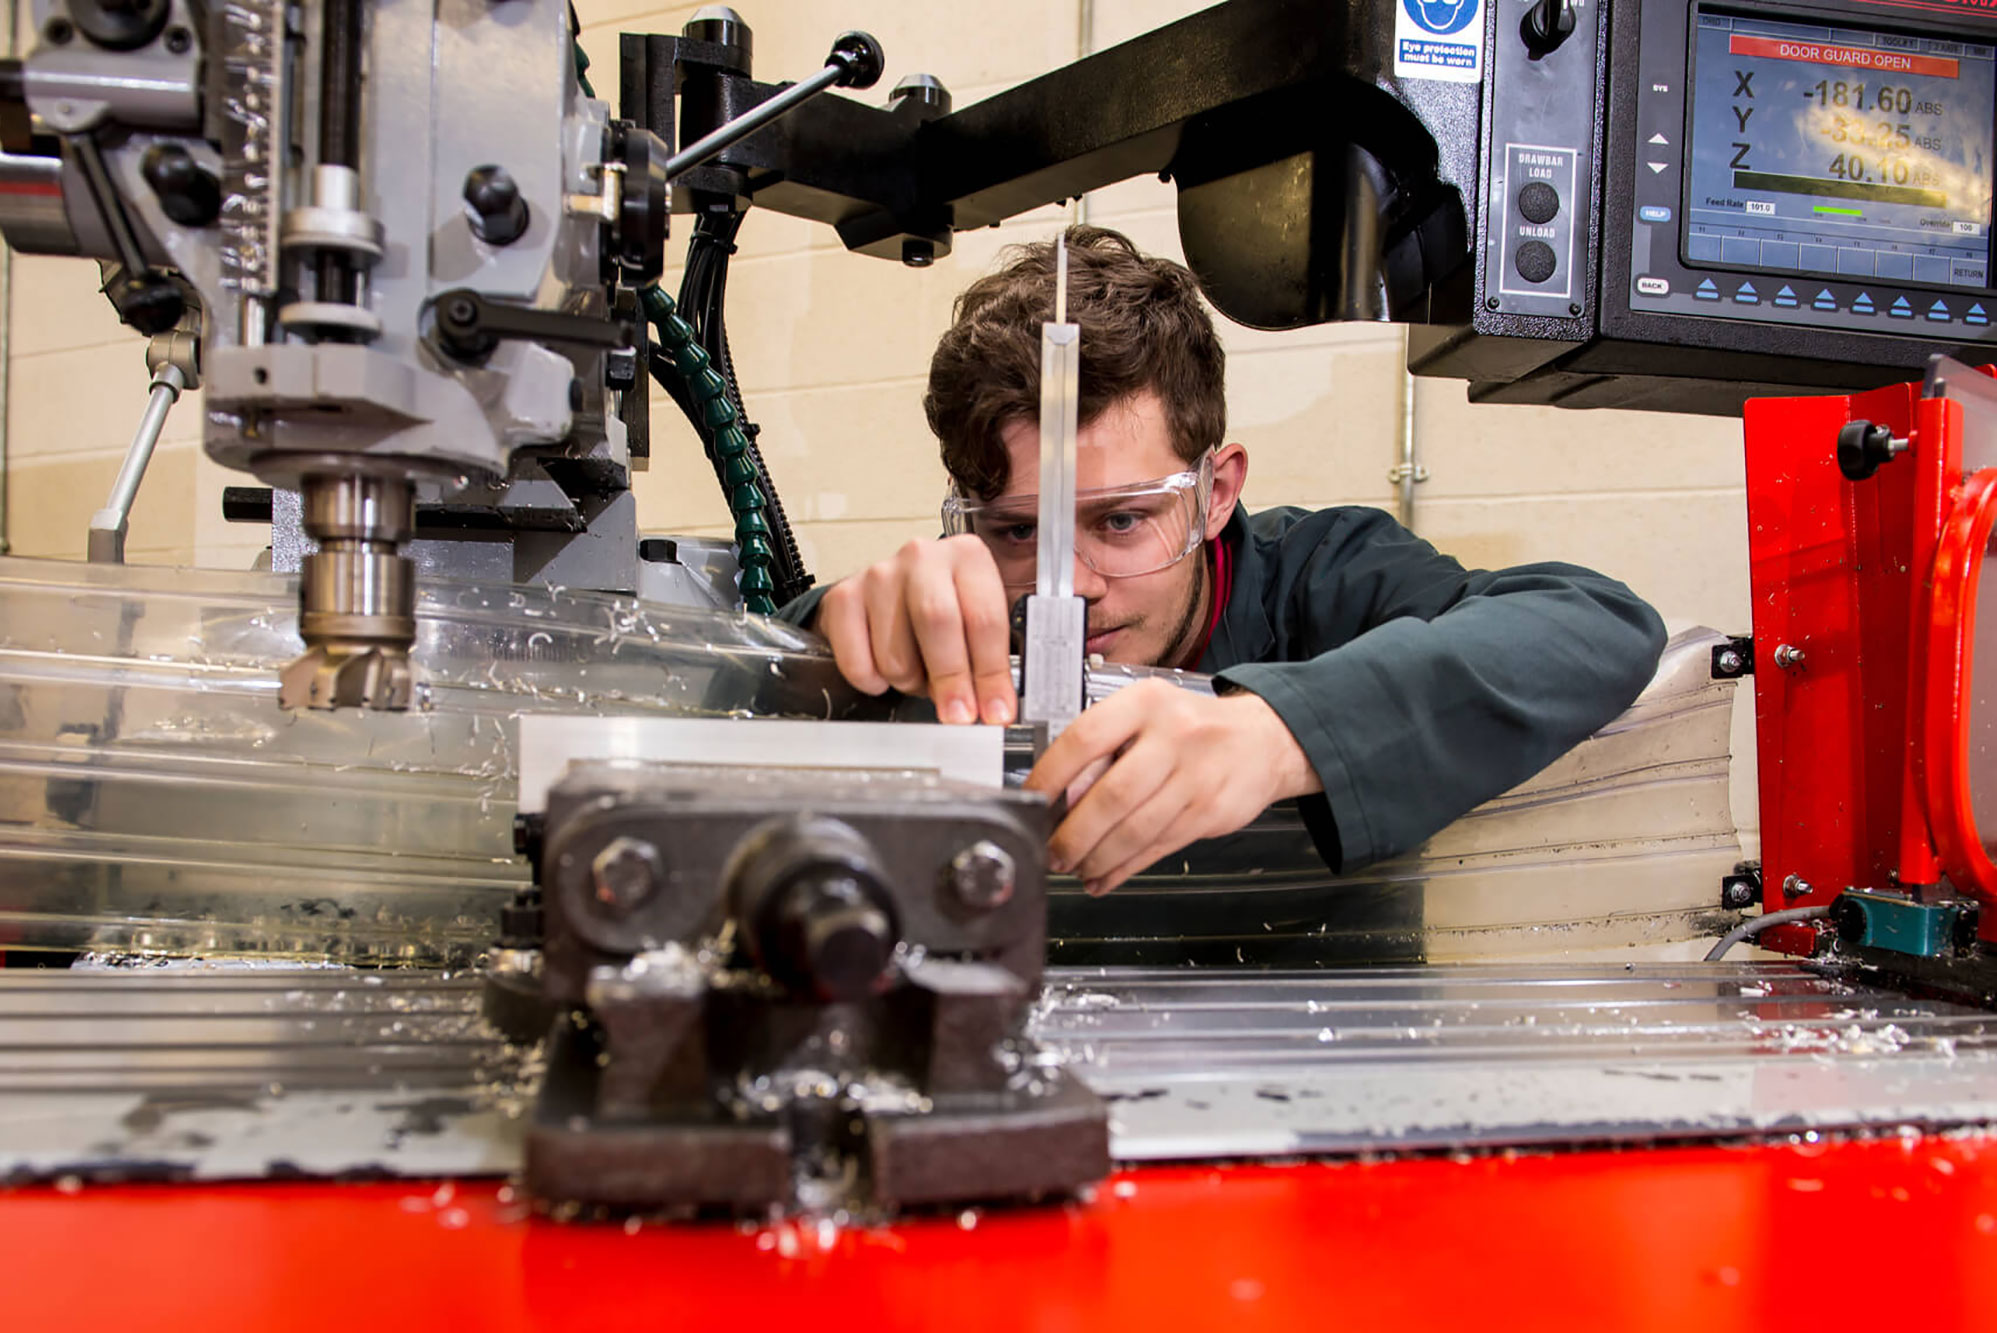 Mechanical Engineering student operating equipment in the workshops